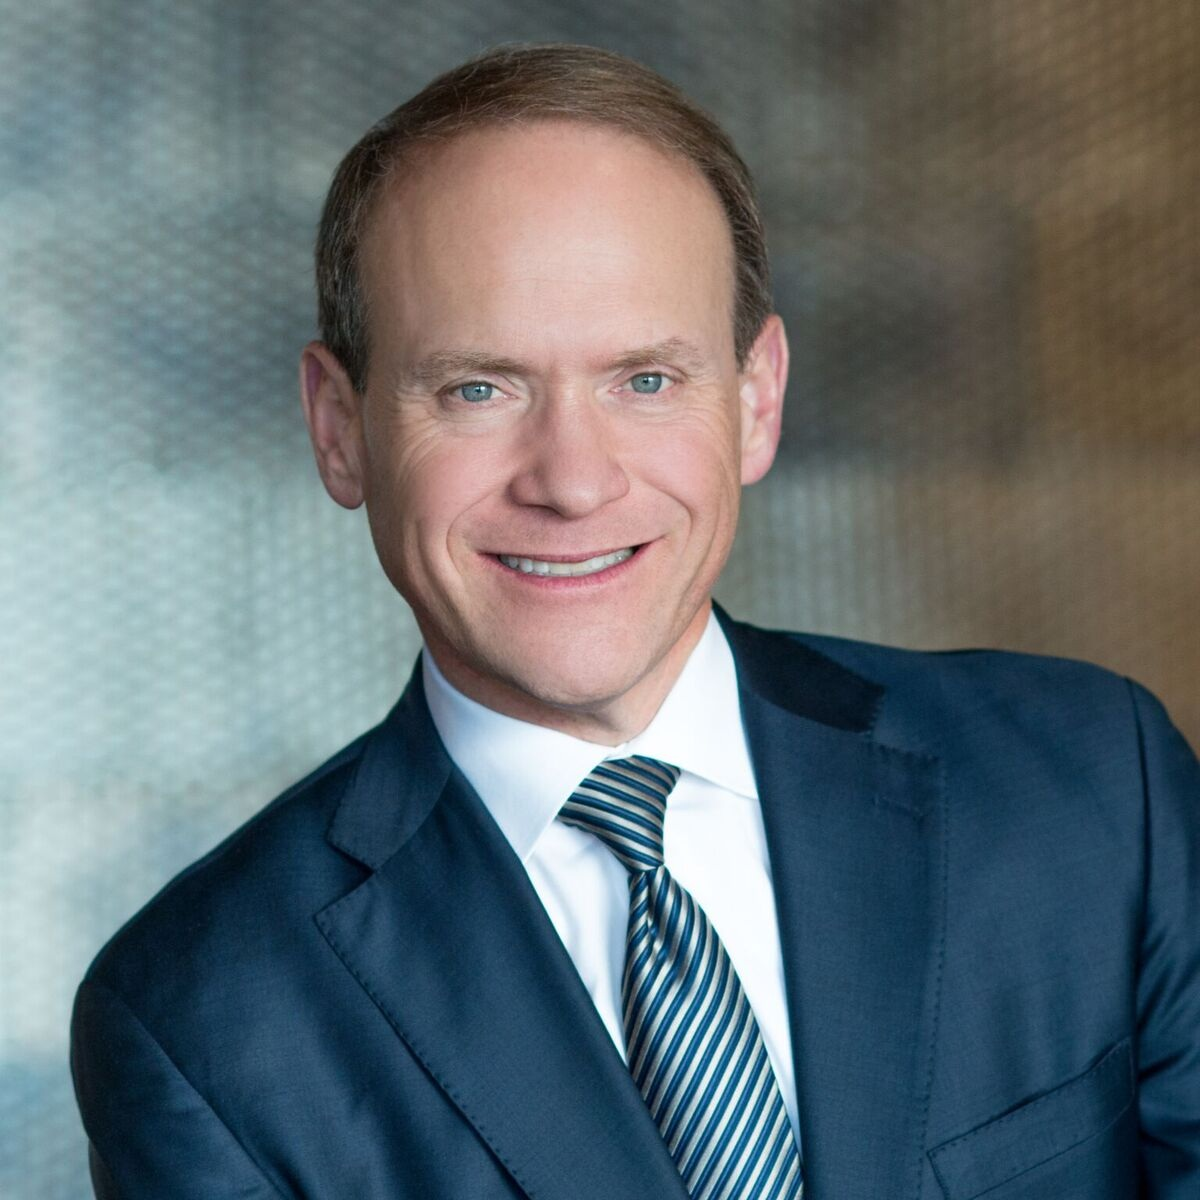 Vince Bertram - President & CEO, Project Lead the Way